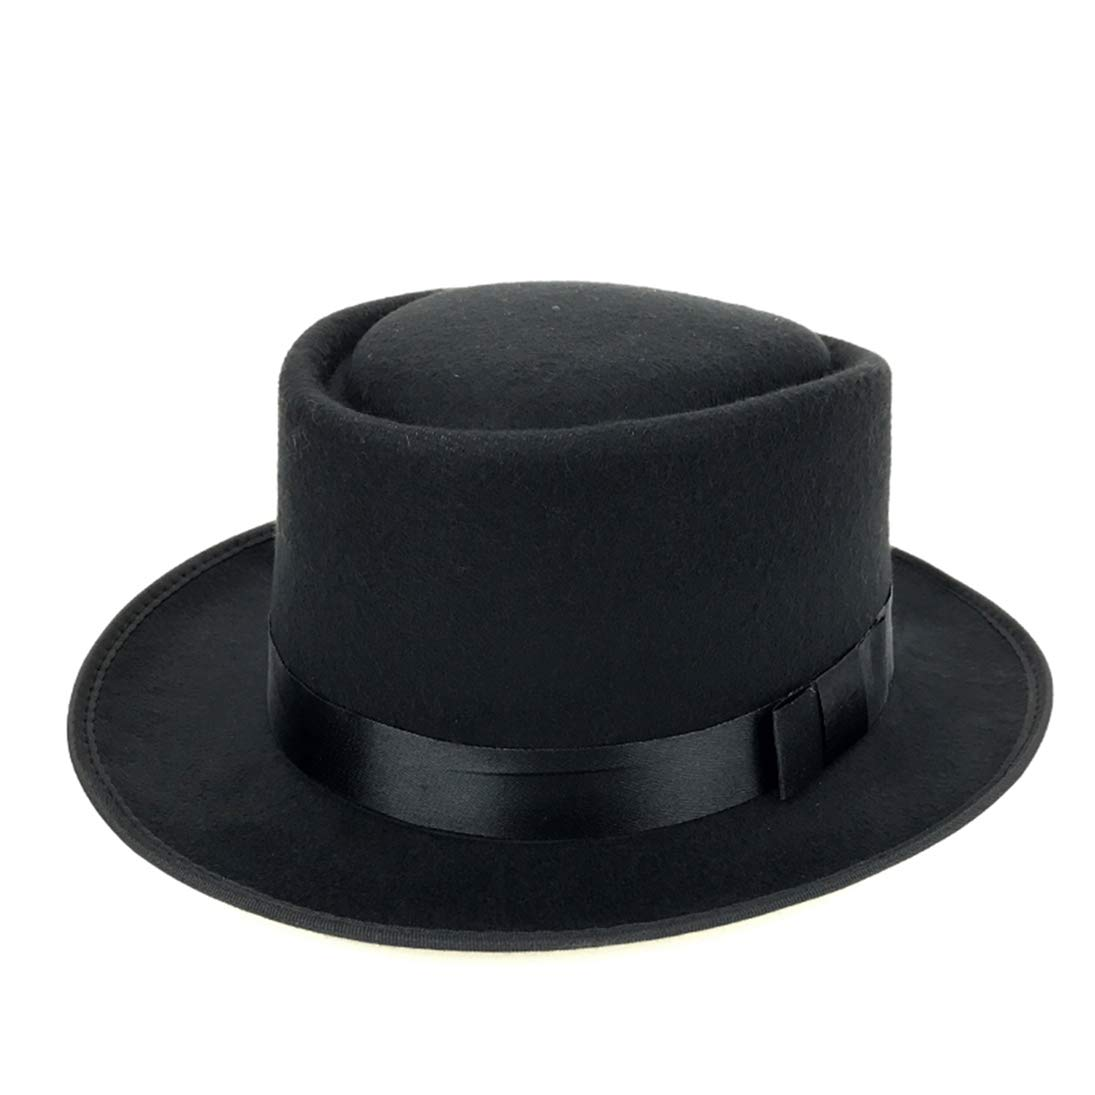 Mens Crushable Wool Felt Porkpie Hat Unisex Classic Trilby Vintage Style Fedora Hat with Band